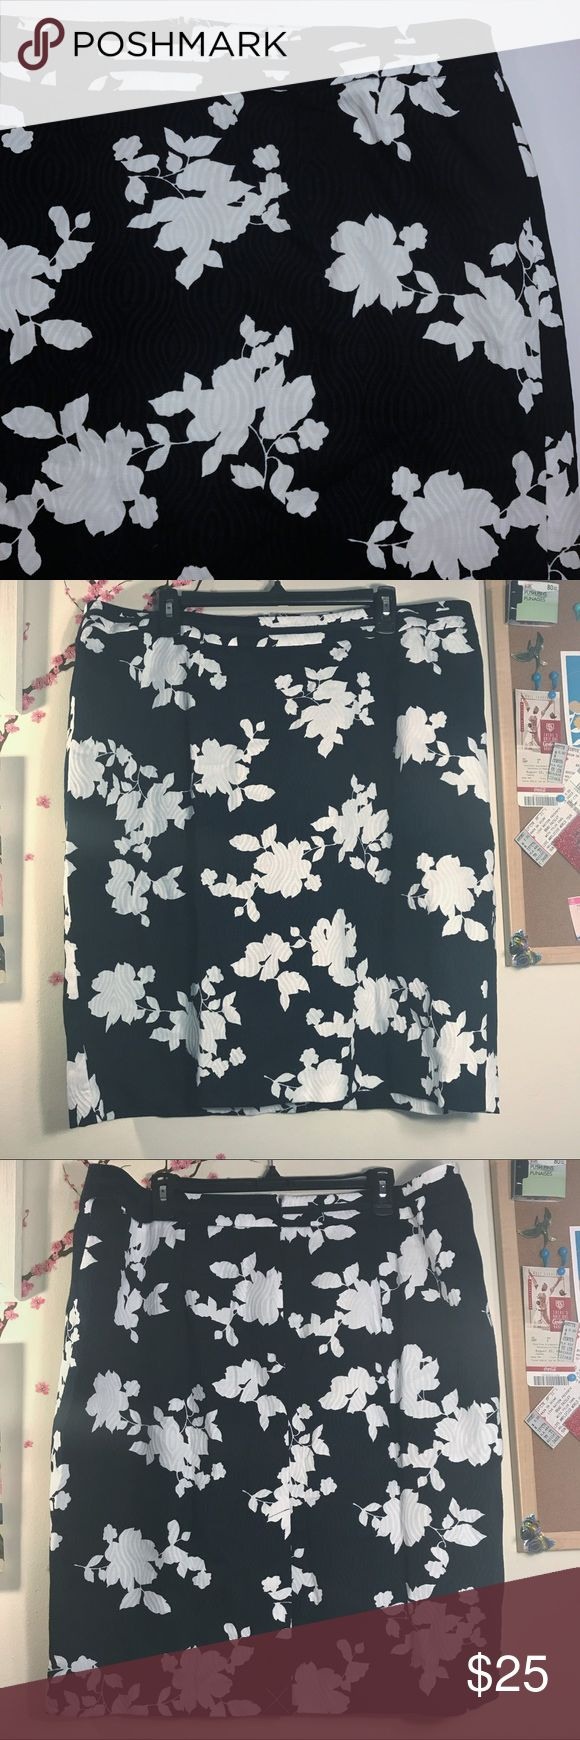 Talbots Woman Navy, Black and White Floral Skirt. This floral patterned skirt has a subtle background of navy and blue. Lining is navy. Zips up the back and split detail at the back as well. Shell: 100% cotton, lining: 100% cotton. Size 16W. Pre-owned.   20 in flat waist 23.5 In Length Measurements are approximate; please allow for human error.   Smoke-free home / No trades / Priced for offers Talbots Skirts Midi